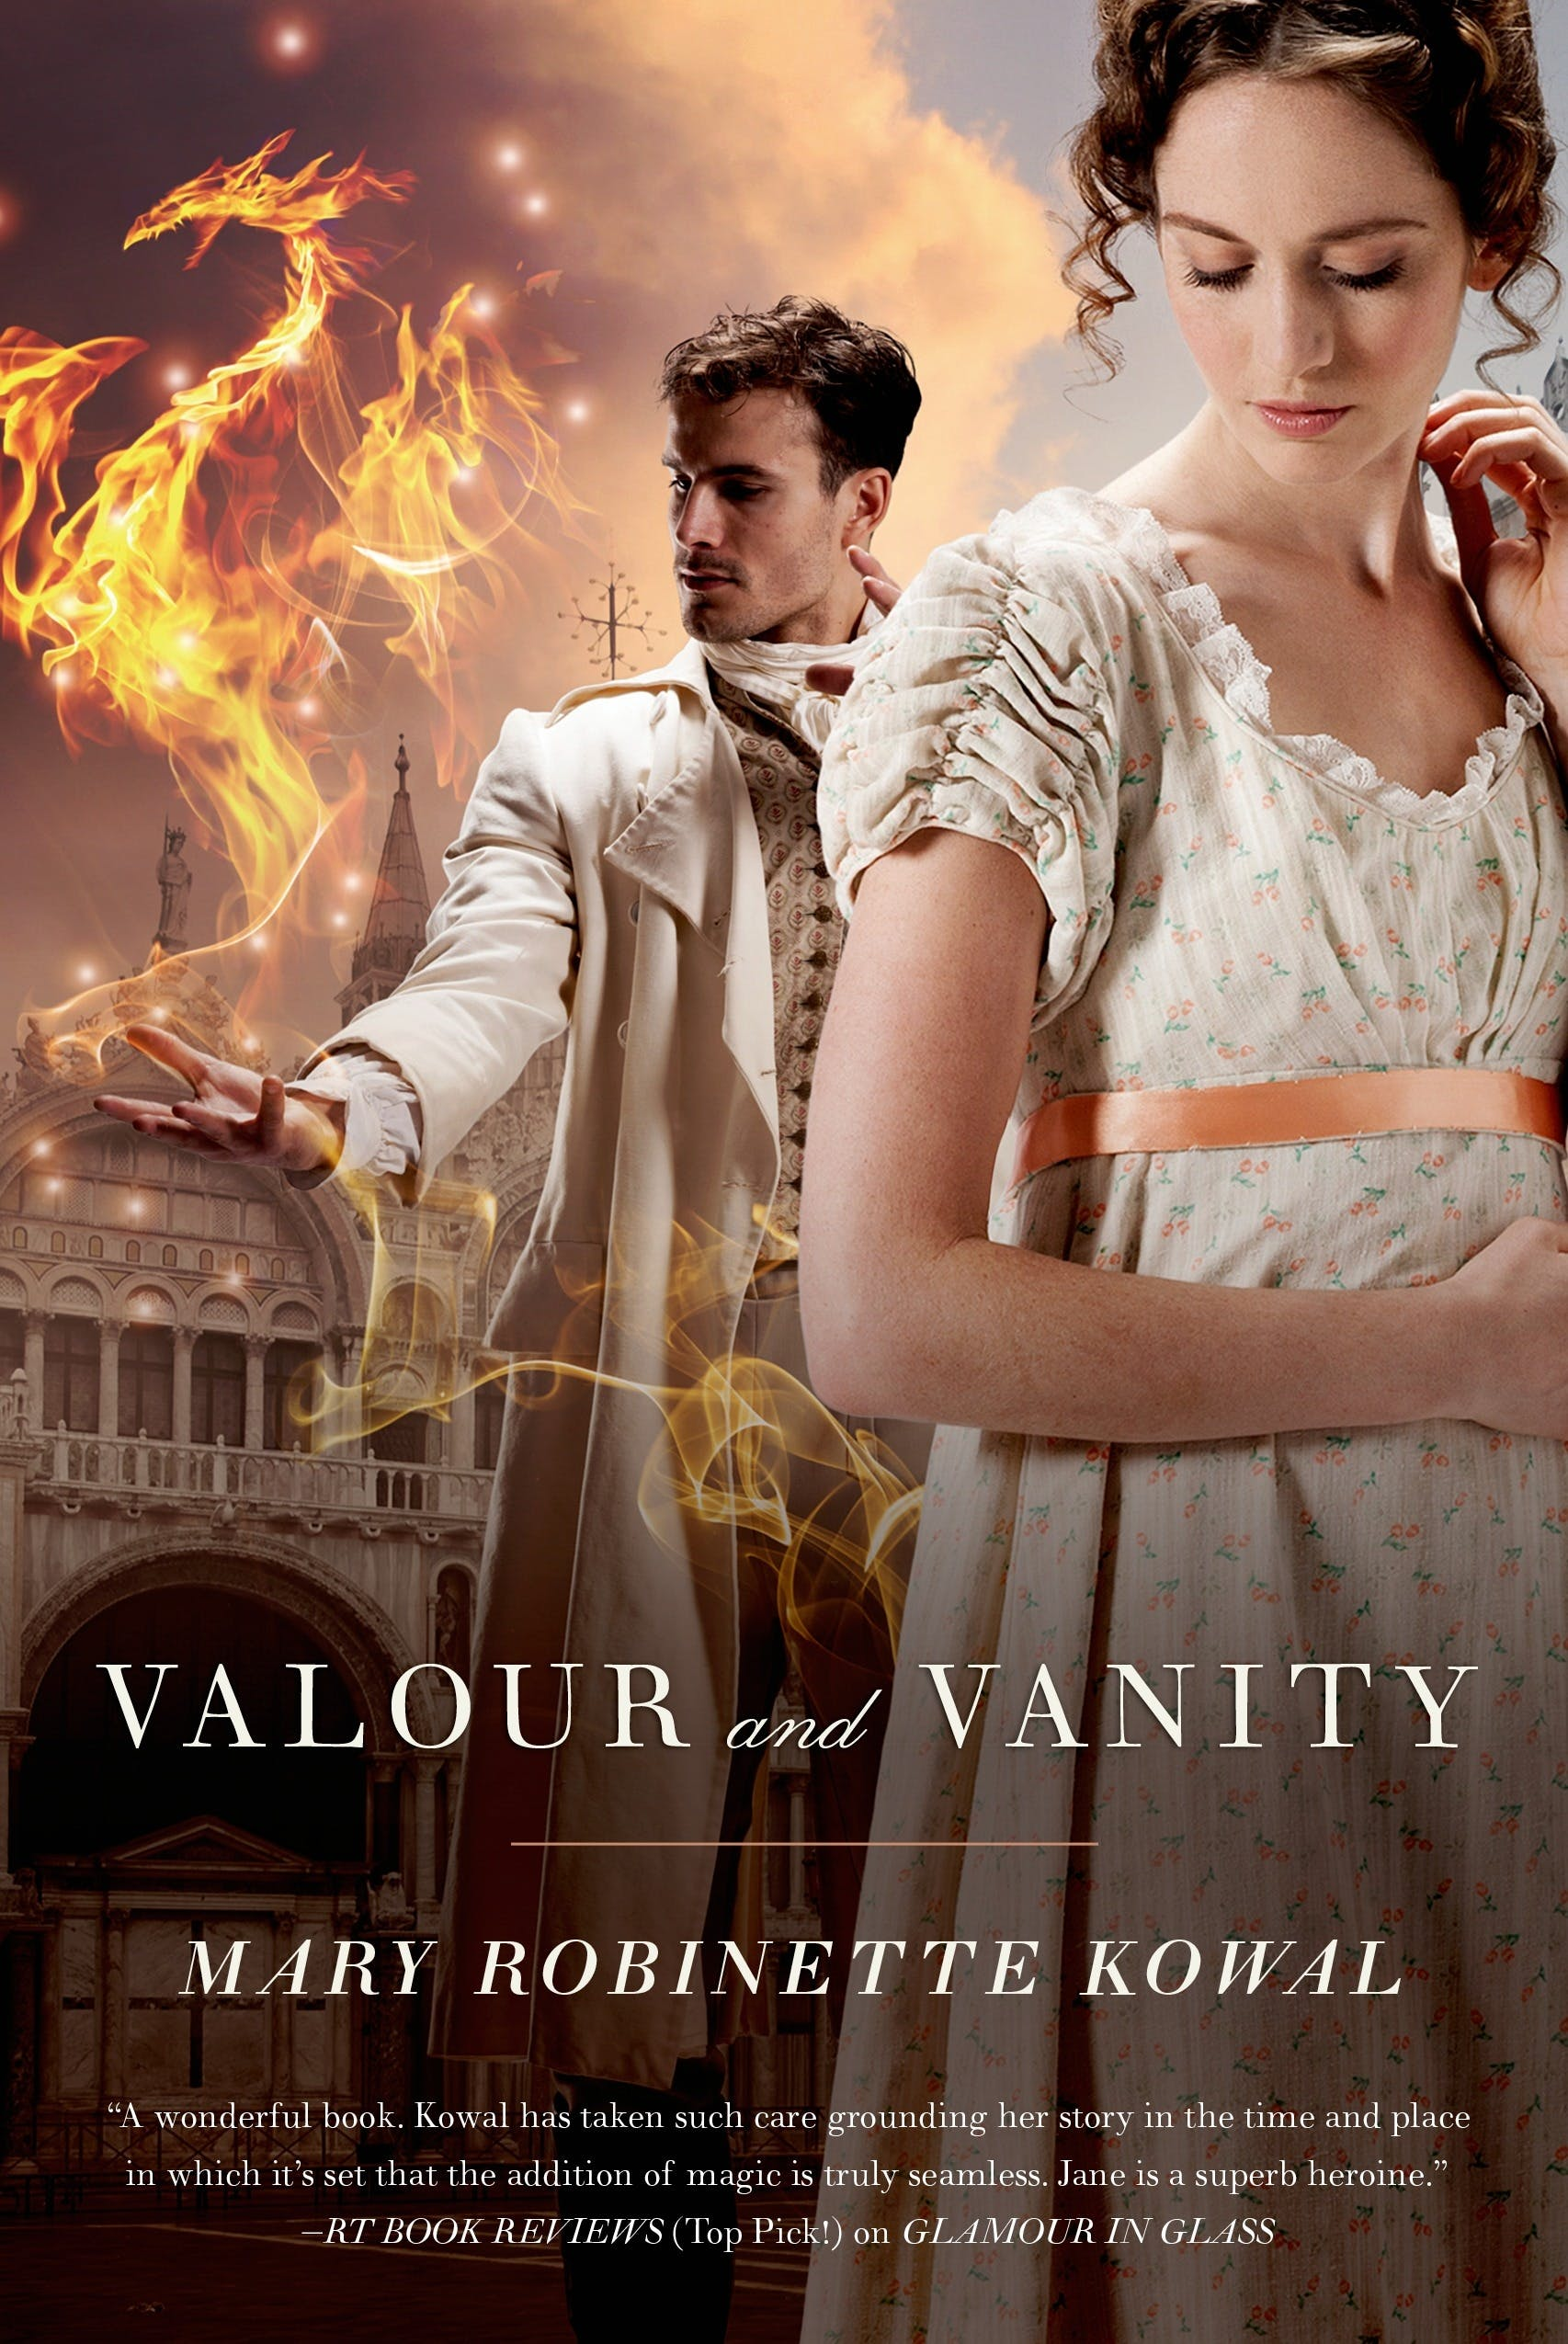 Image of Valour and Vanity